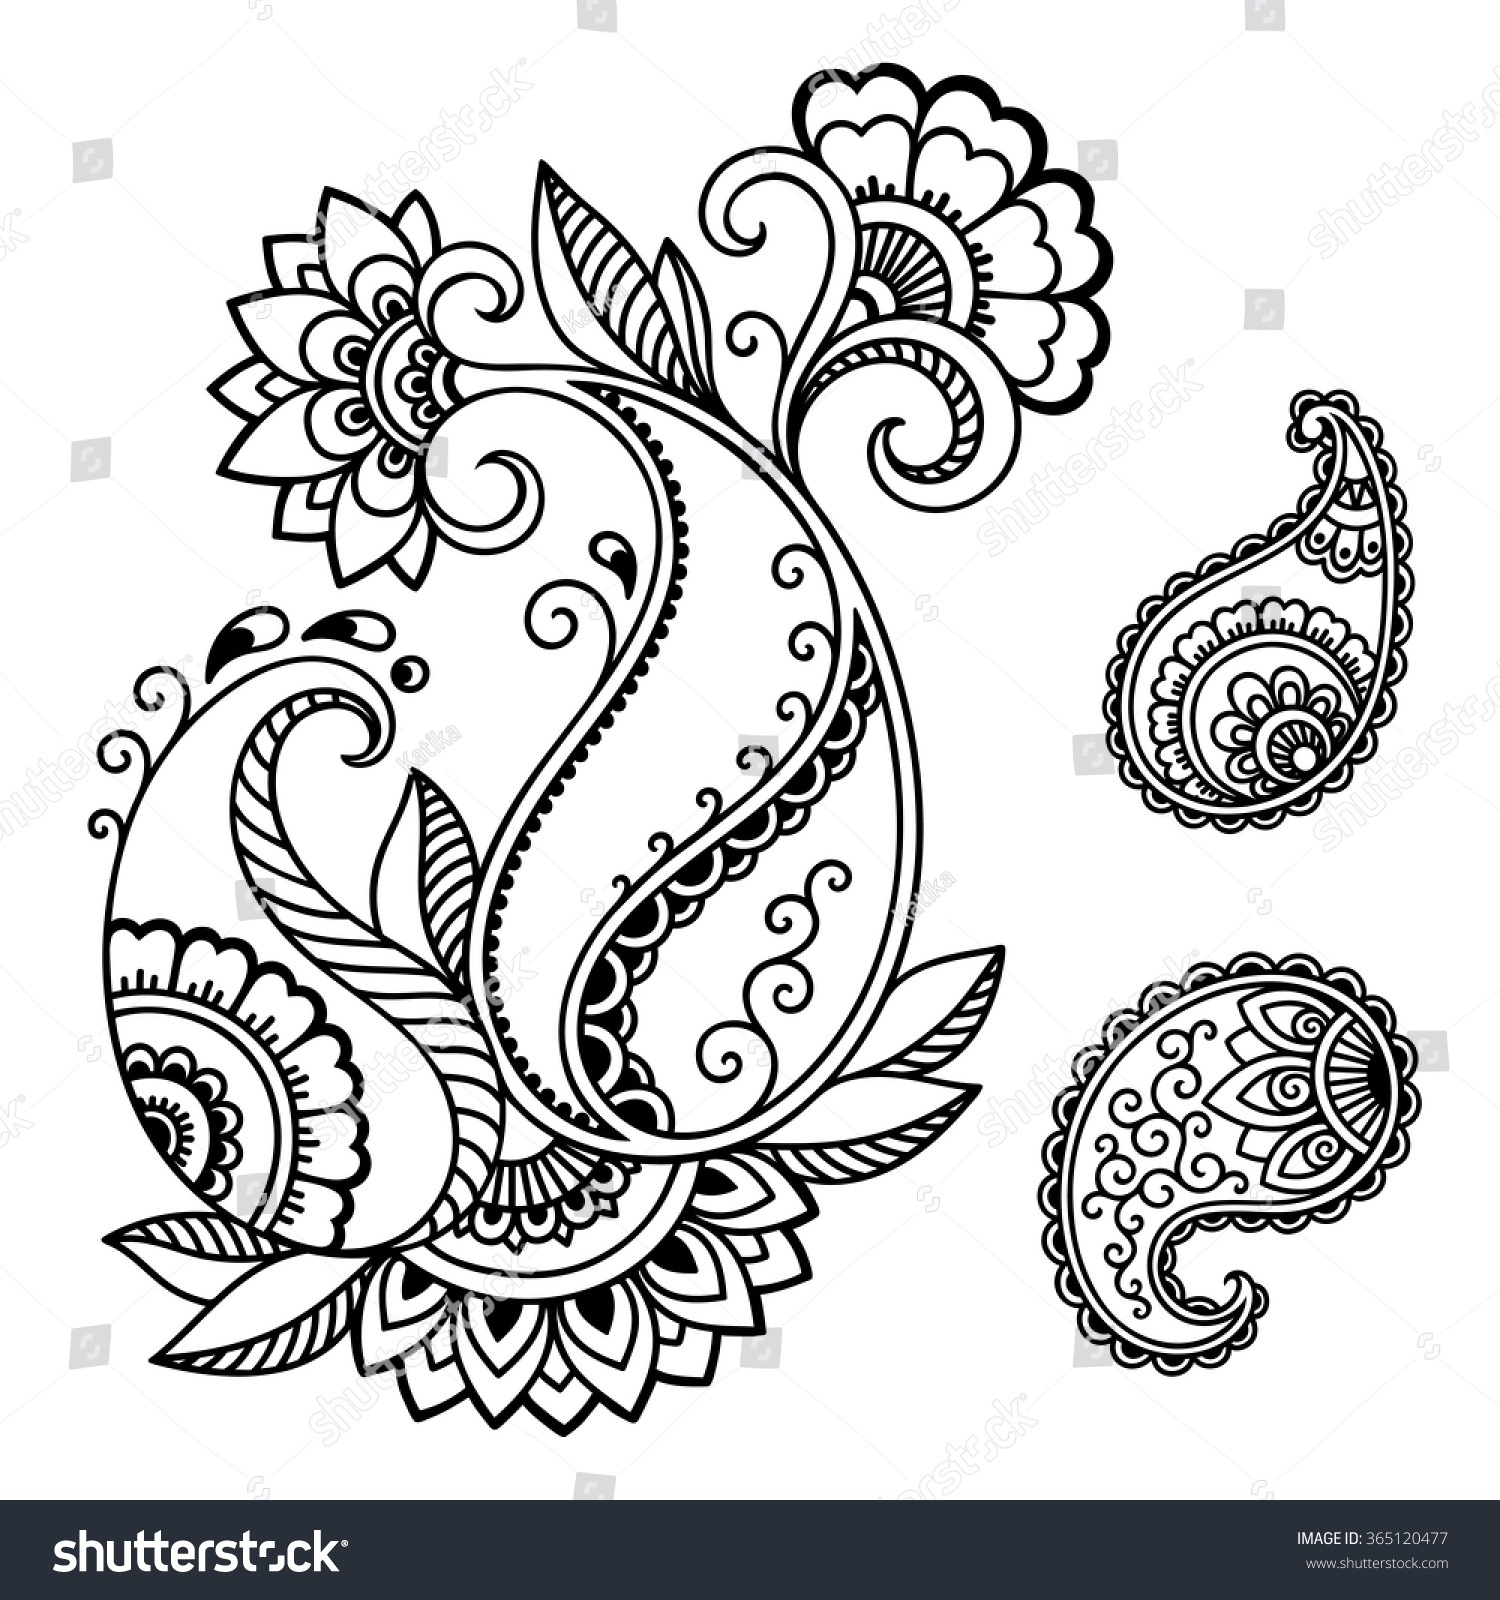 Henna Tattoo Flower Template In Indian Style: Henna Tattoo Flower Templatemehndi Stock Vector 365120477